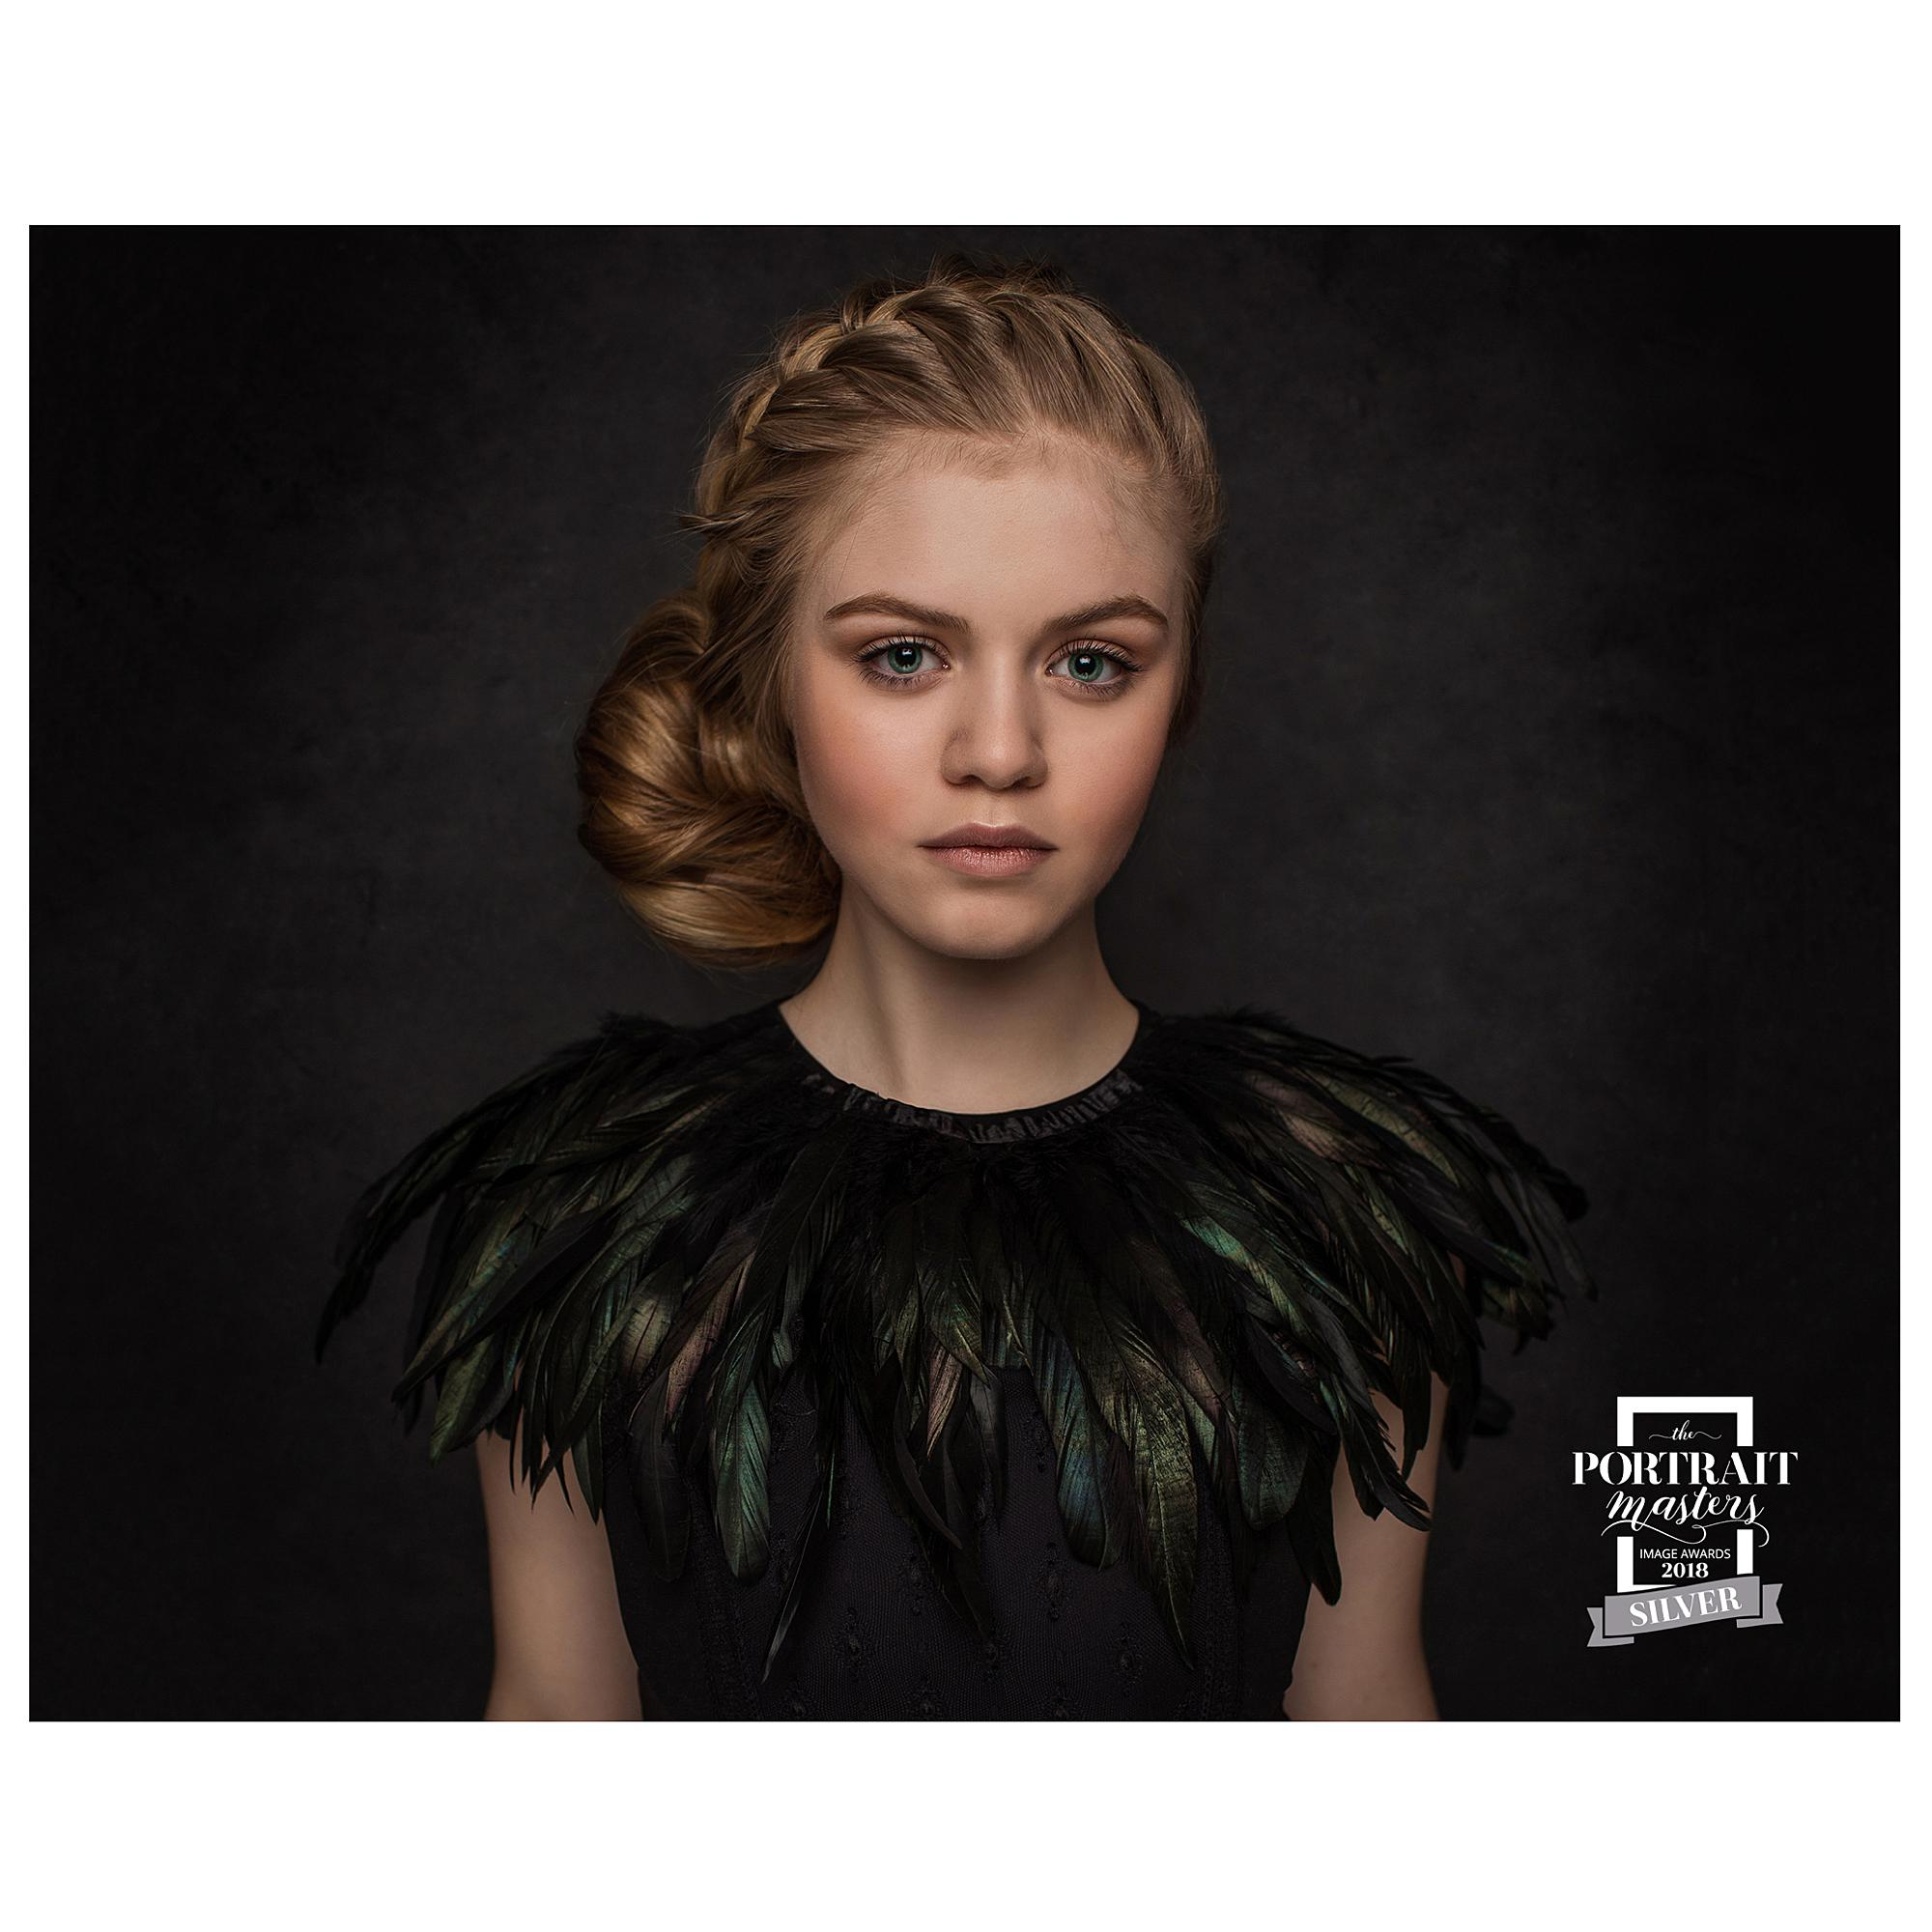 Fine Art Portrait of a Teenage girl in a Black dress and black feather cape in a photography studio in Stoke By Clare wins a Silver Award from the Portrait Masters